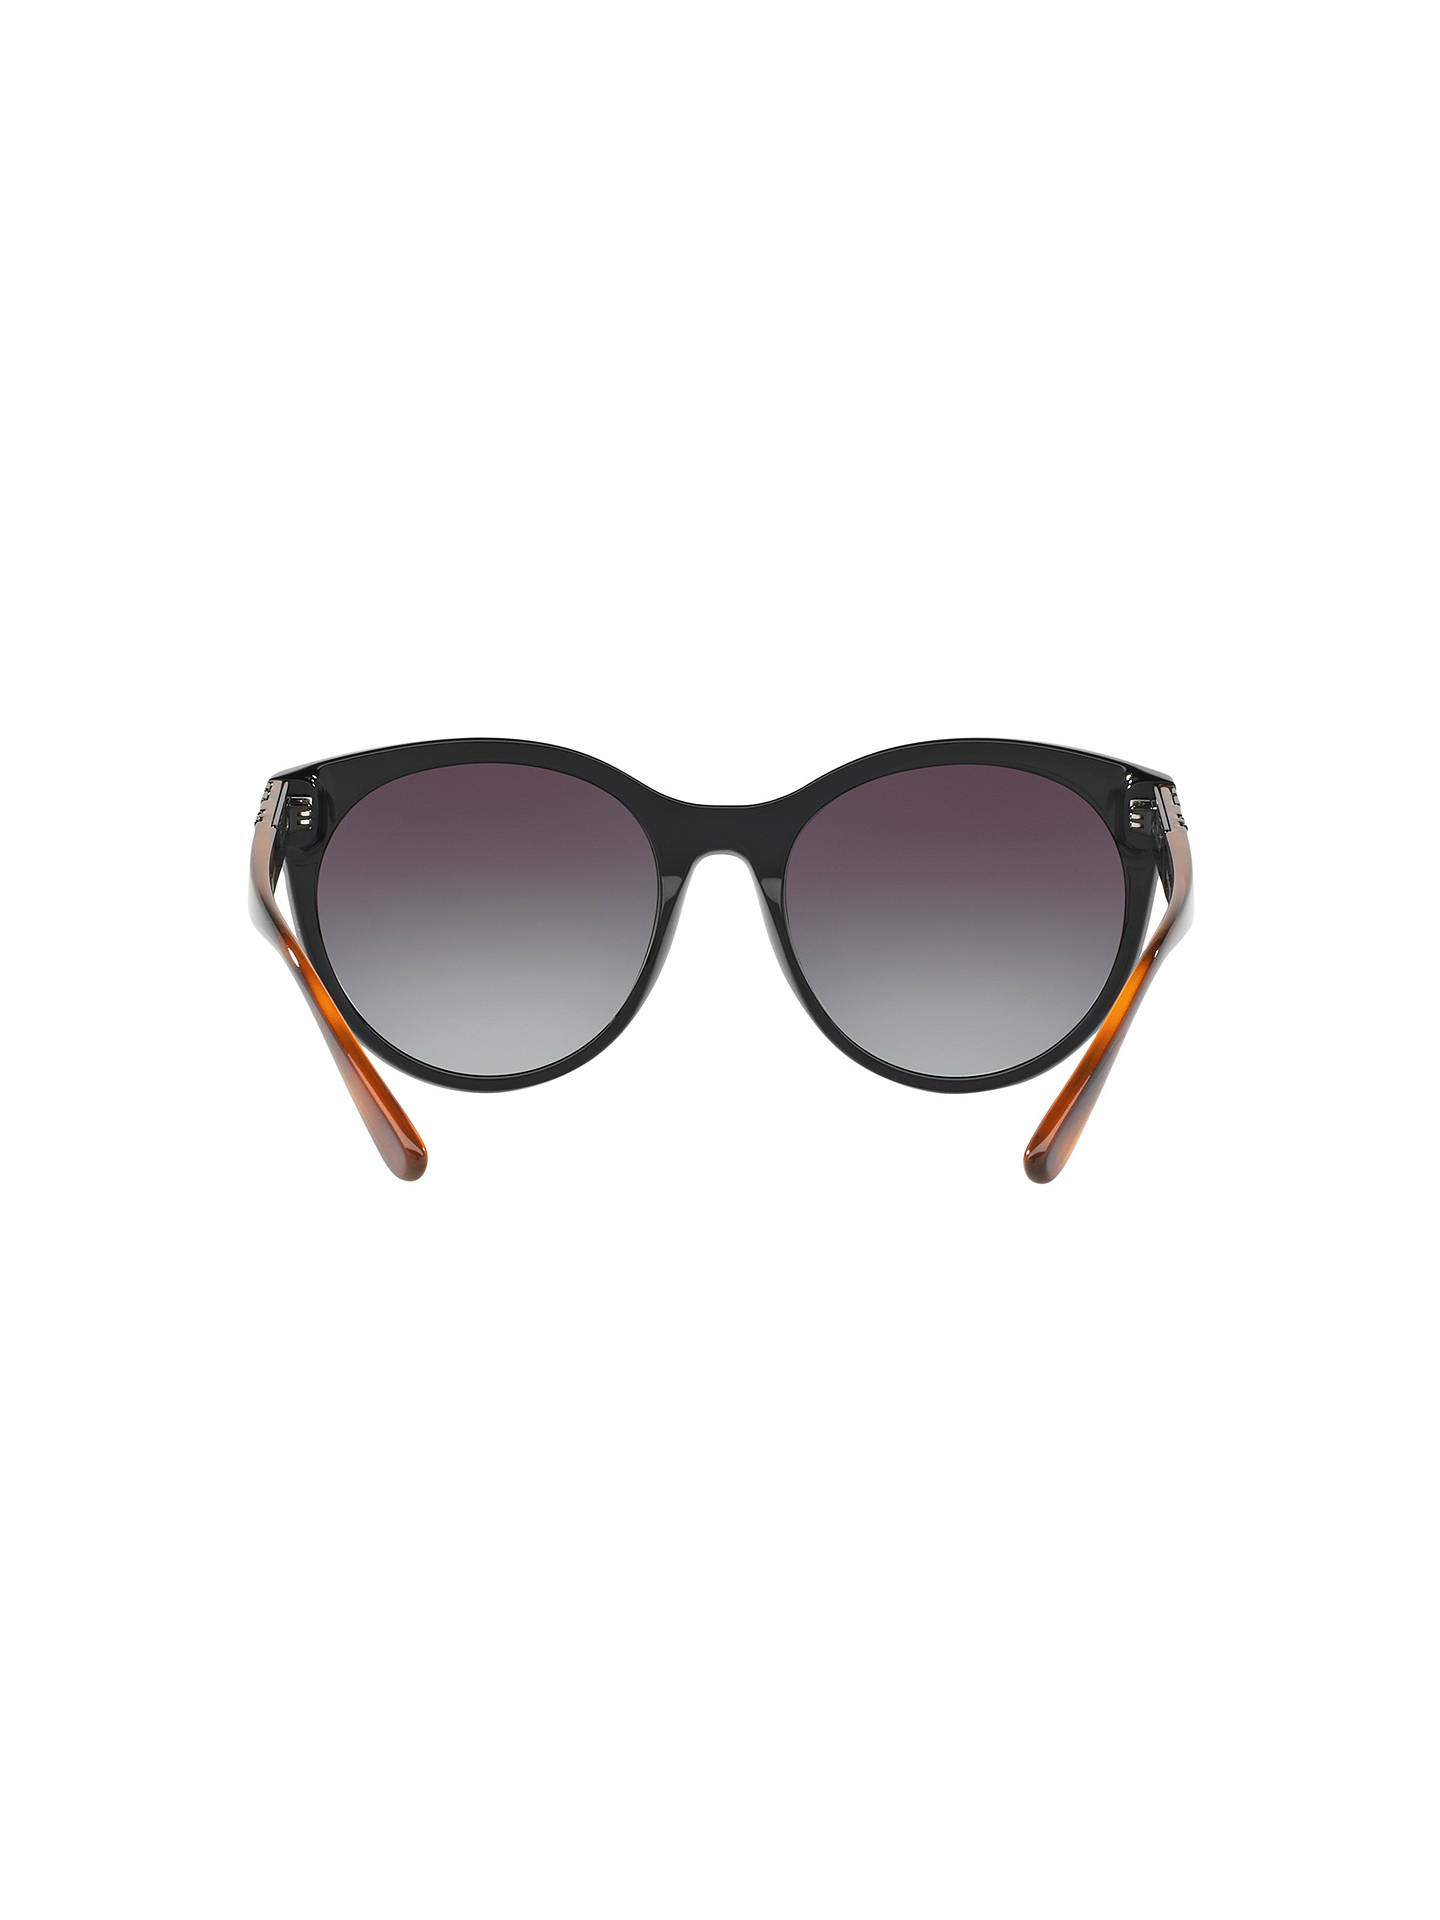 BuyBurberry BE4236 Oval Sunglasses, Black/Grey Gradient Online at johnlewis.com